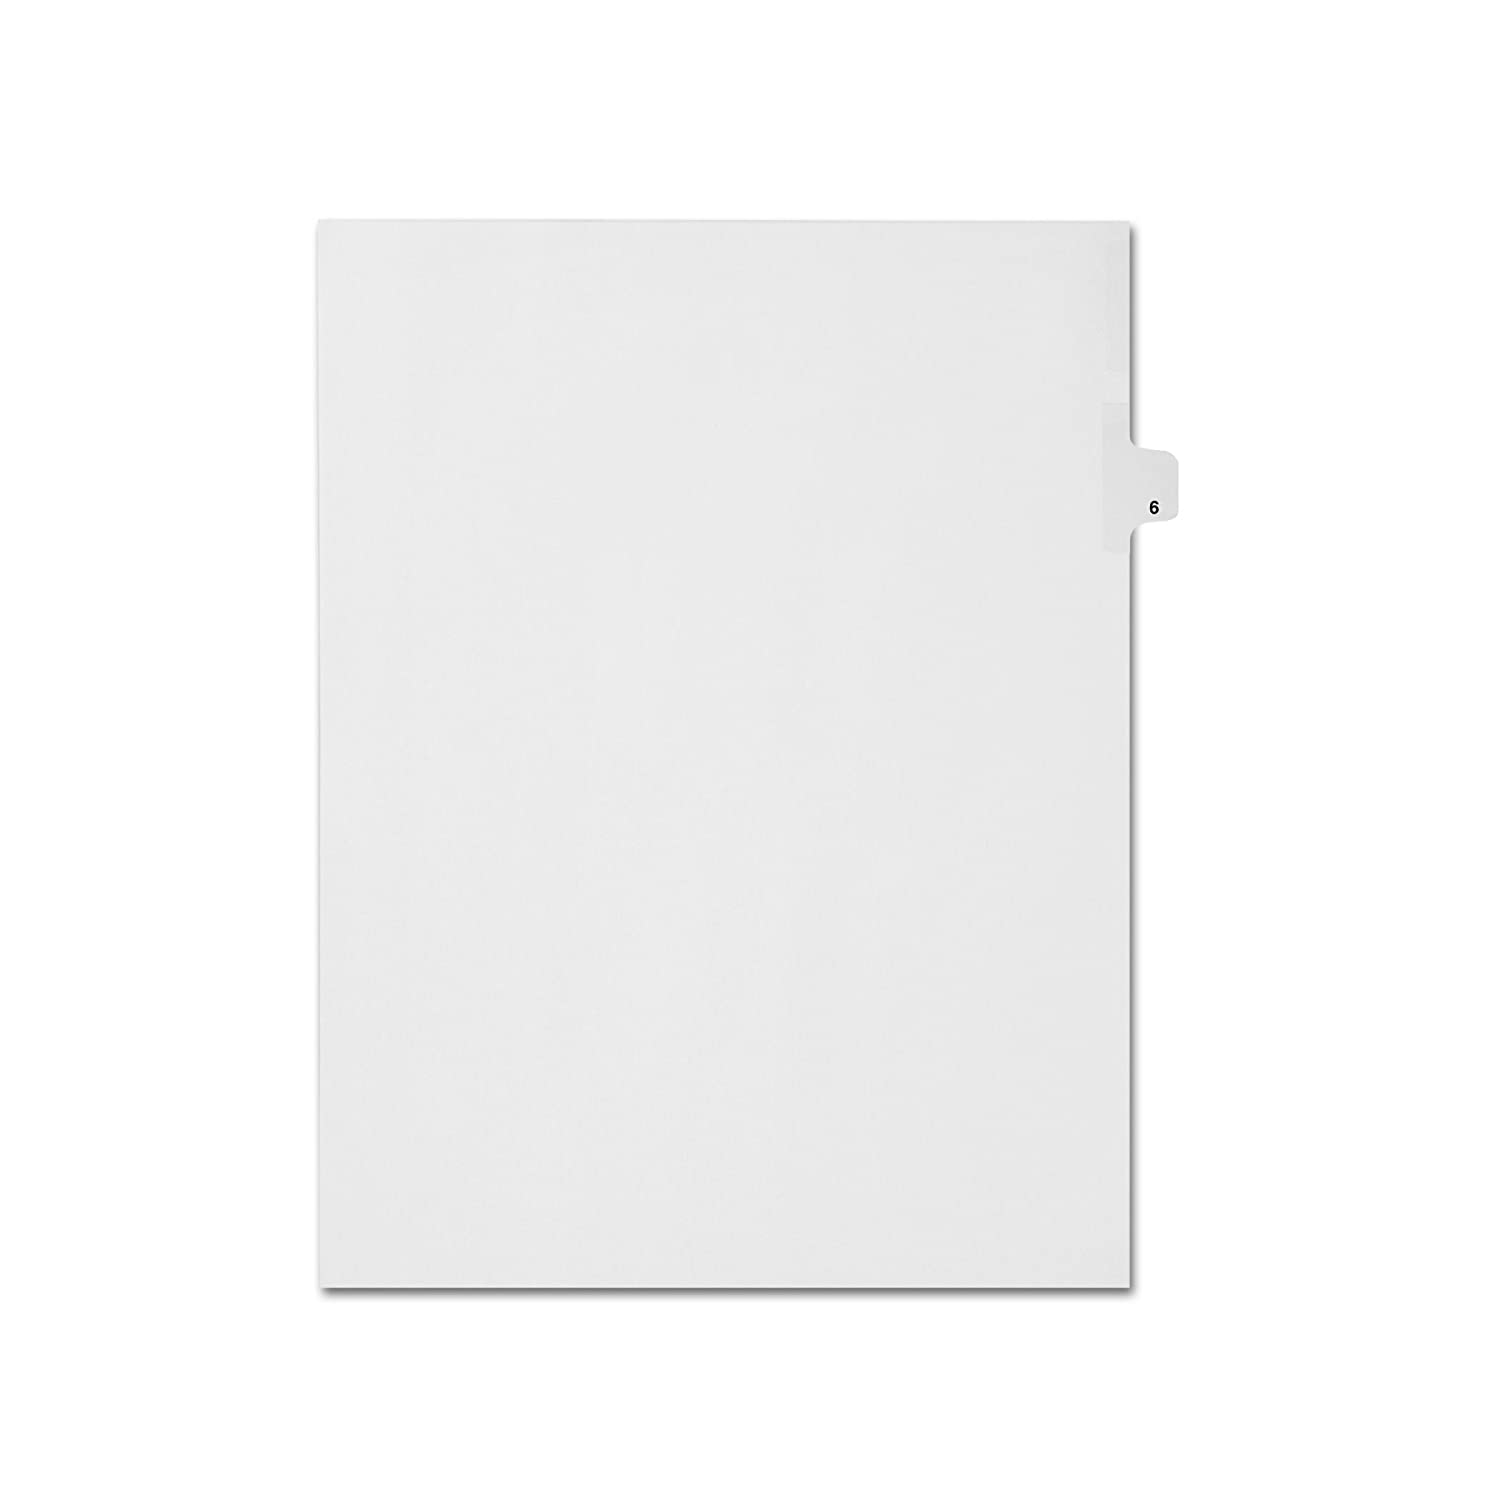 Side Tabs Letter Size AMZfiling Individual Index Tab Dividers- Number 6 Position 6 White 25 Sheets//Pkg